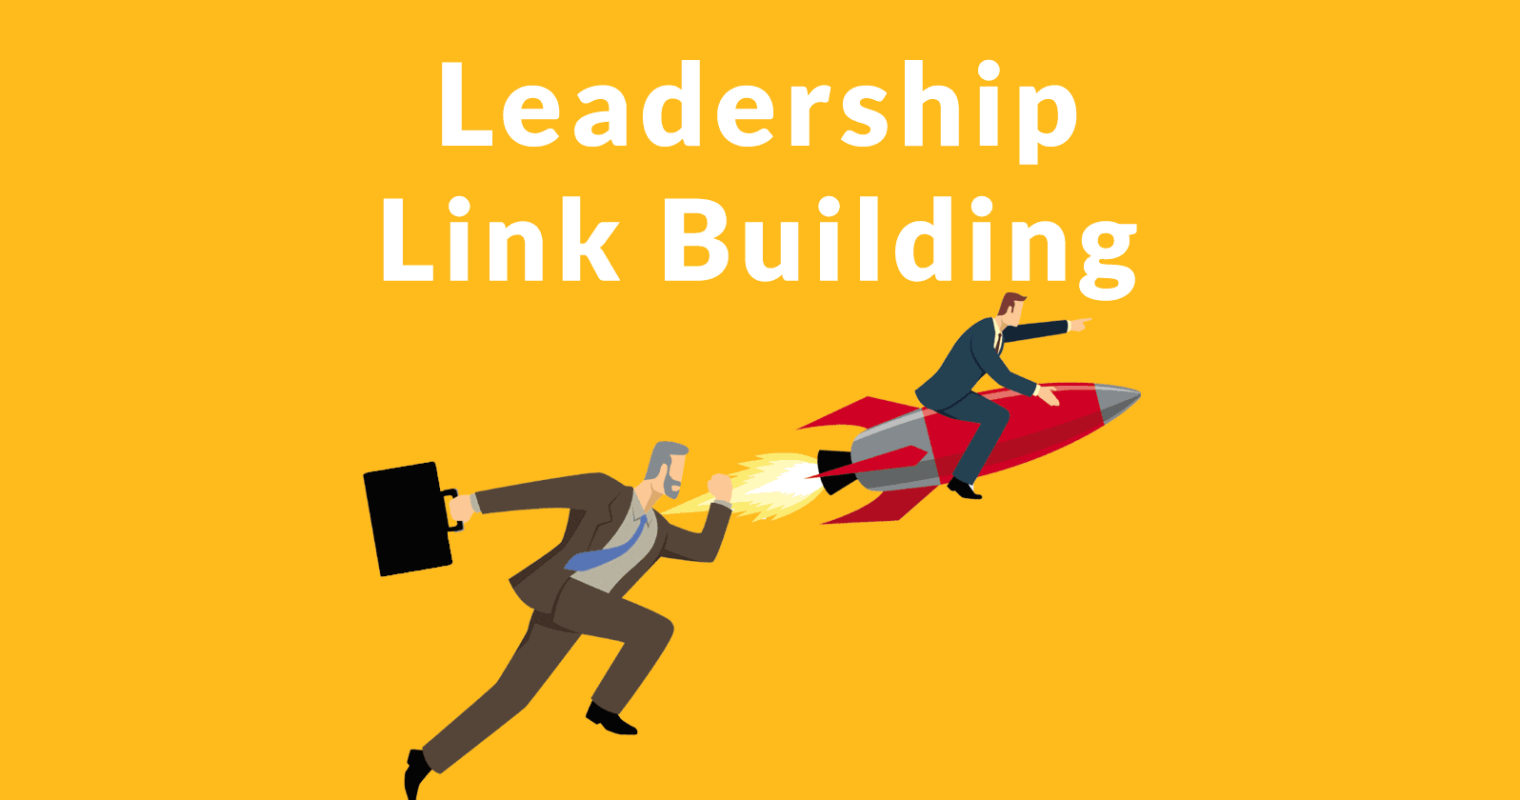 Rethinking What it Means to Have Better Links